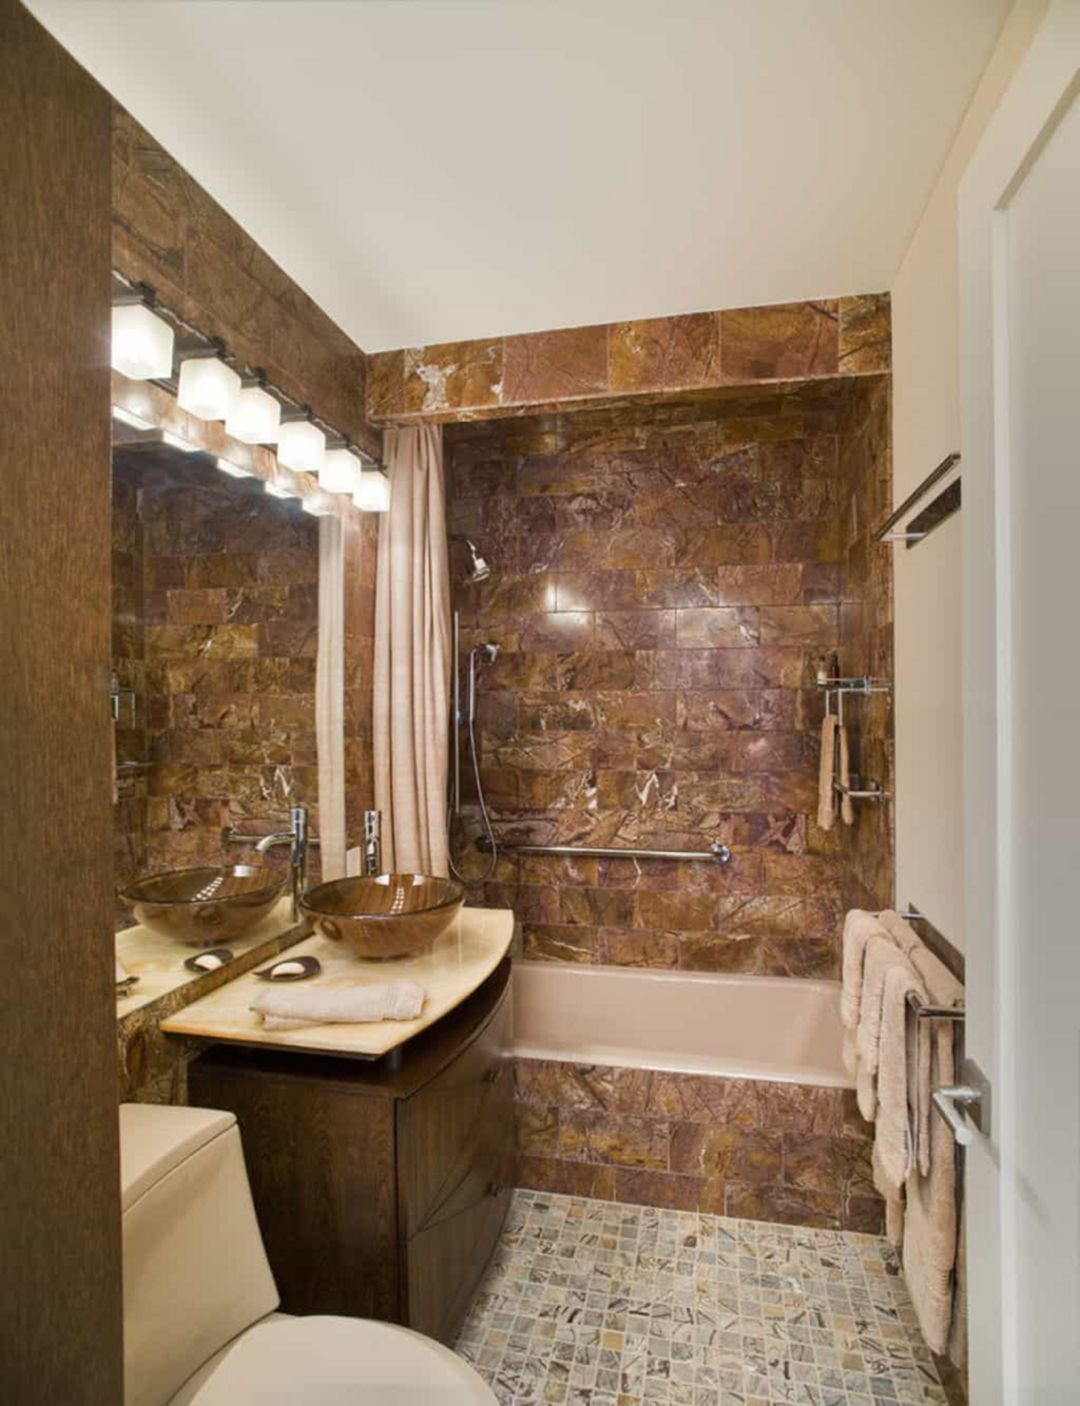 Luxurious And Modern Small Bathroom Design That You Can Apply At Home Bathroom Design Luxury Bathroom Design Small Modern Small Luxury Bathrooms